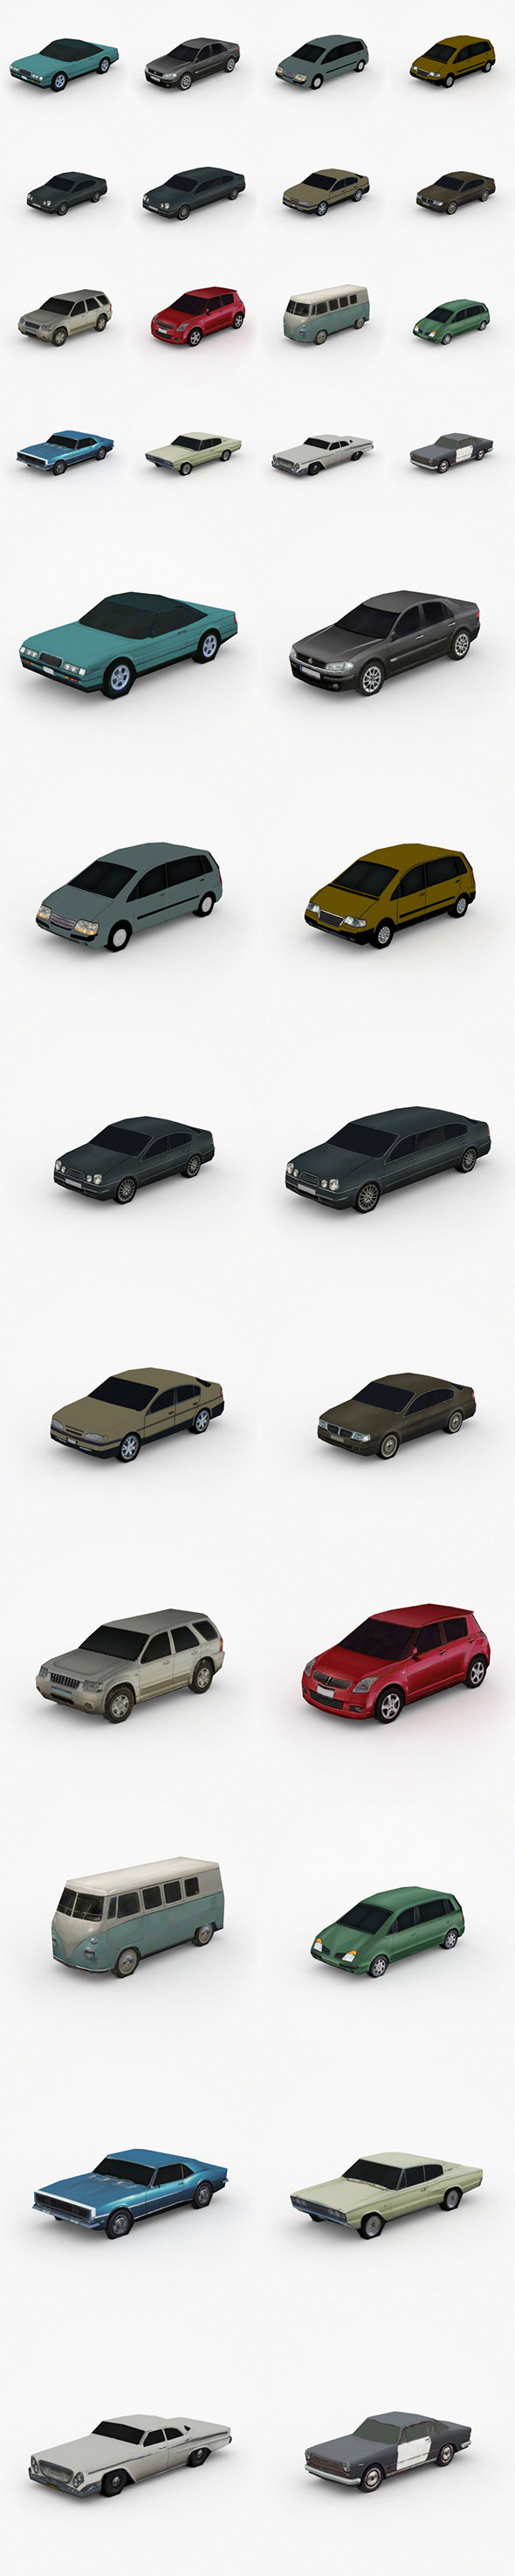 3D model Low Poly Cars Pack Vol. 2 - 3DOcean Item for Sale